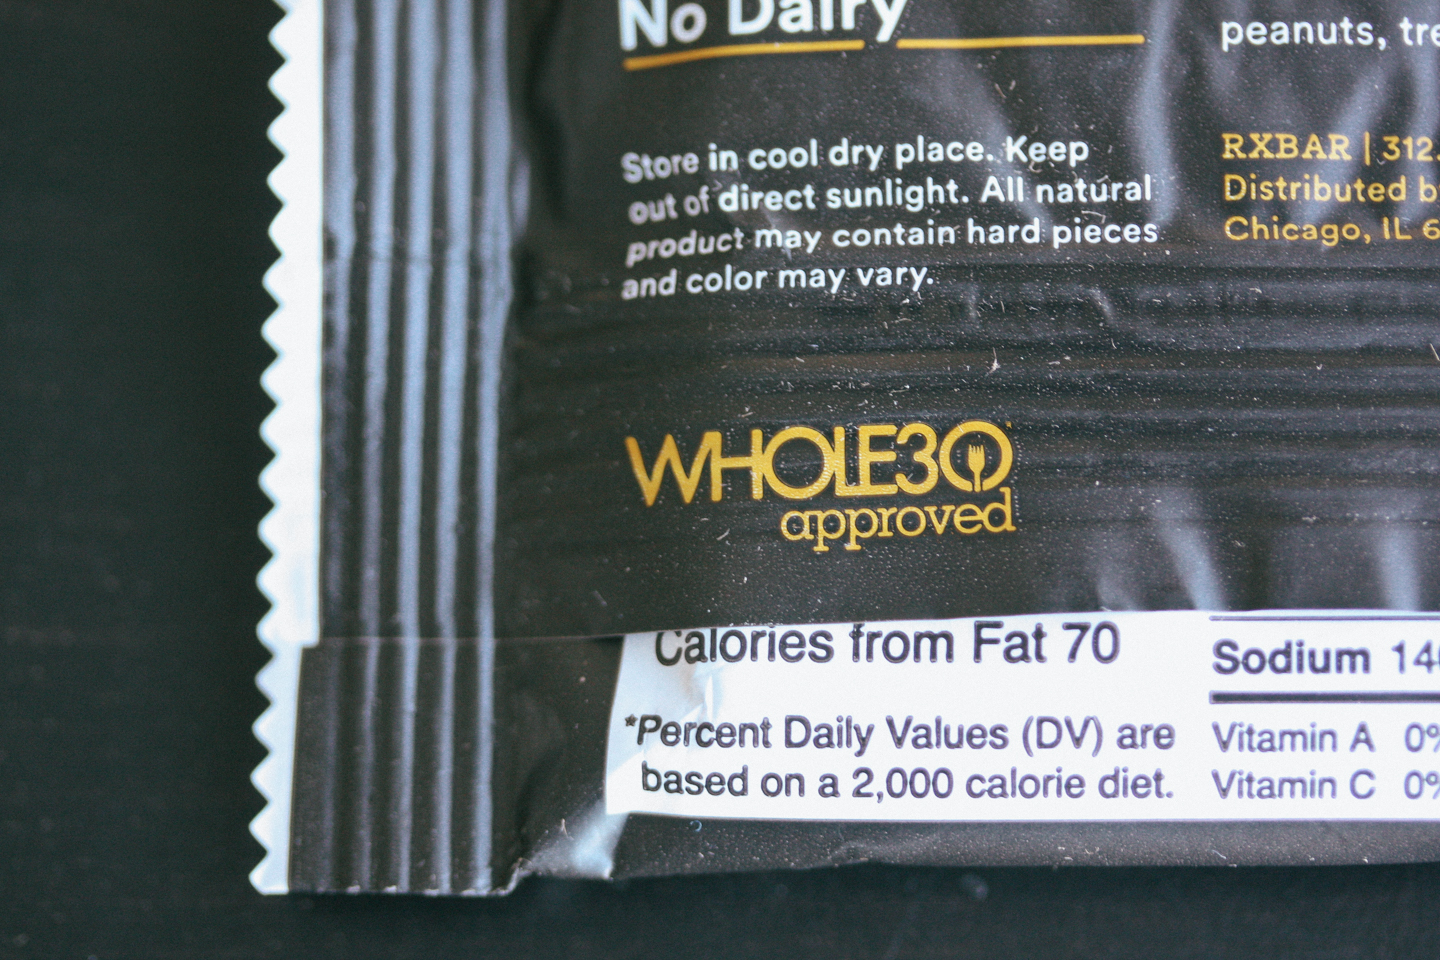 RXBARs are Whole 30